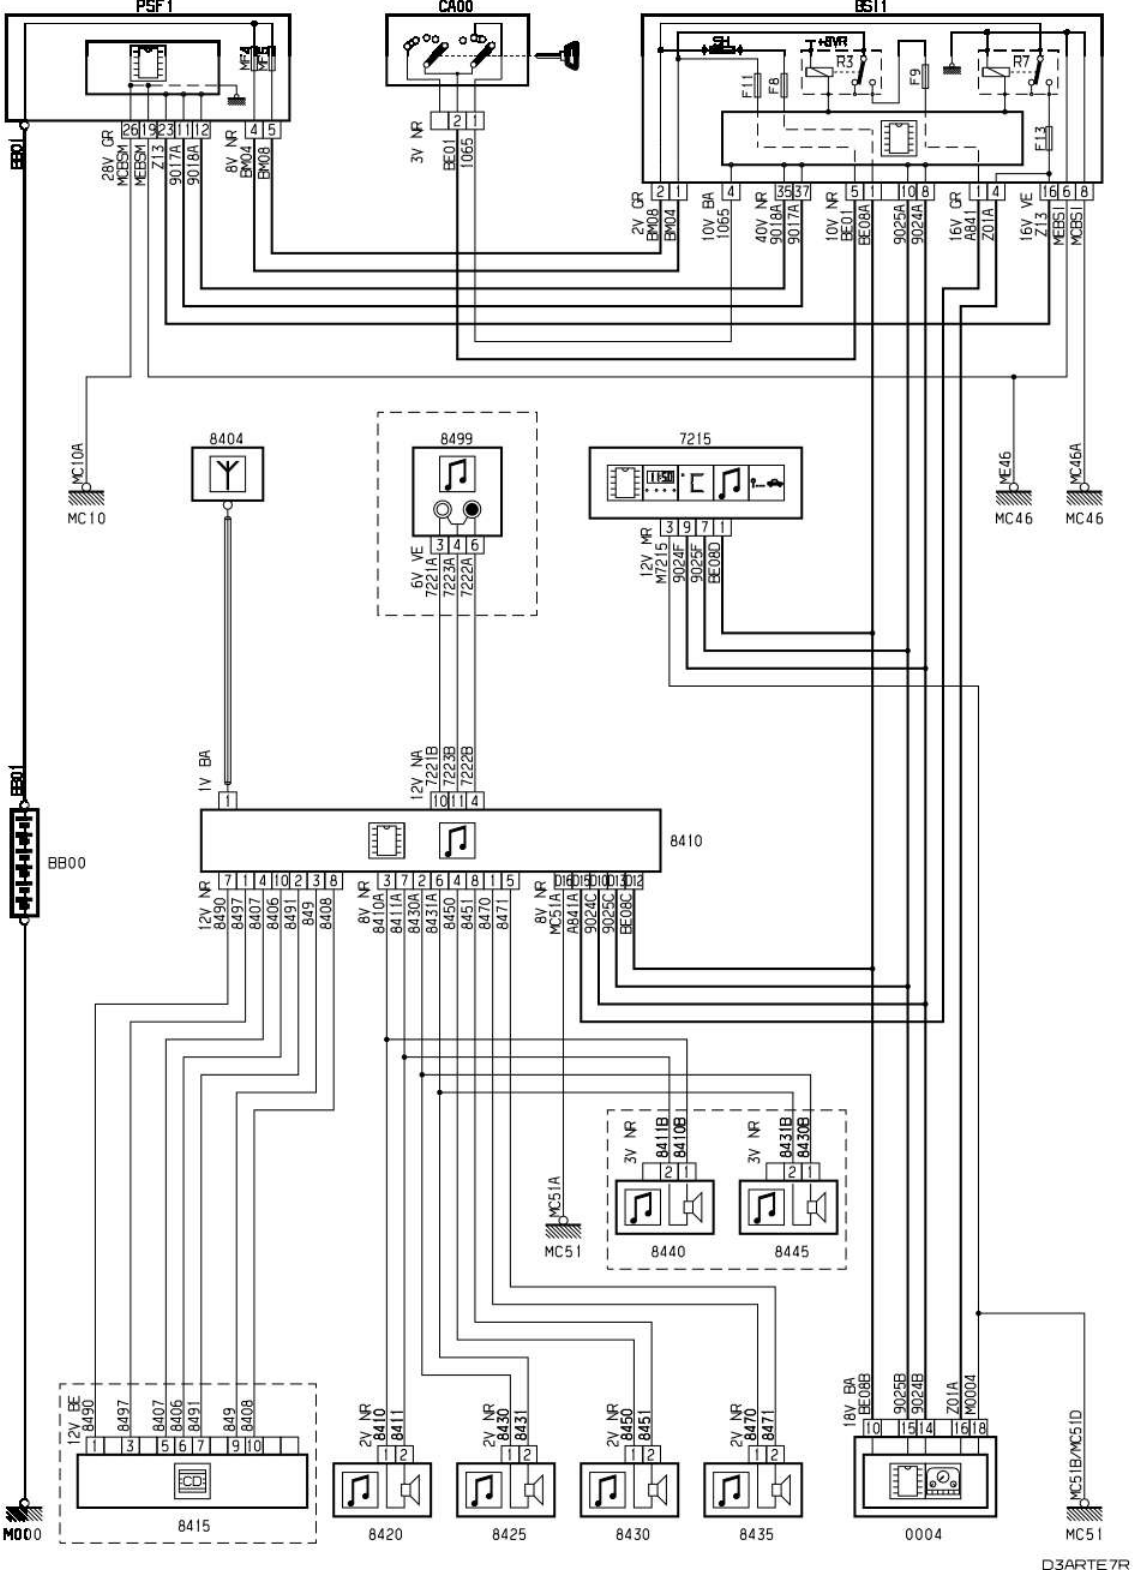 scion xb engine diagram pdf suzuki wagon r engine diagram